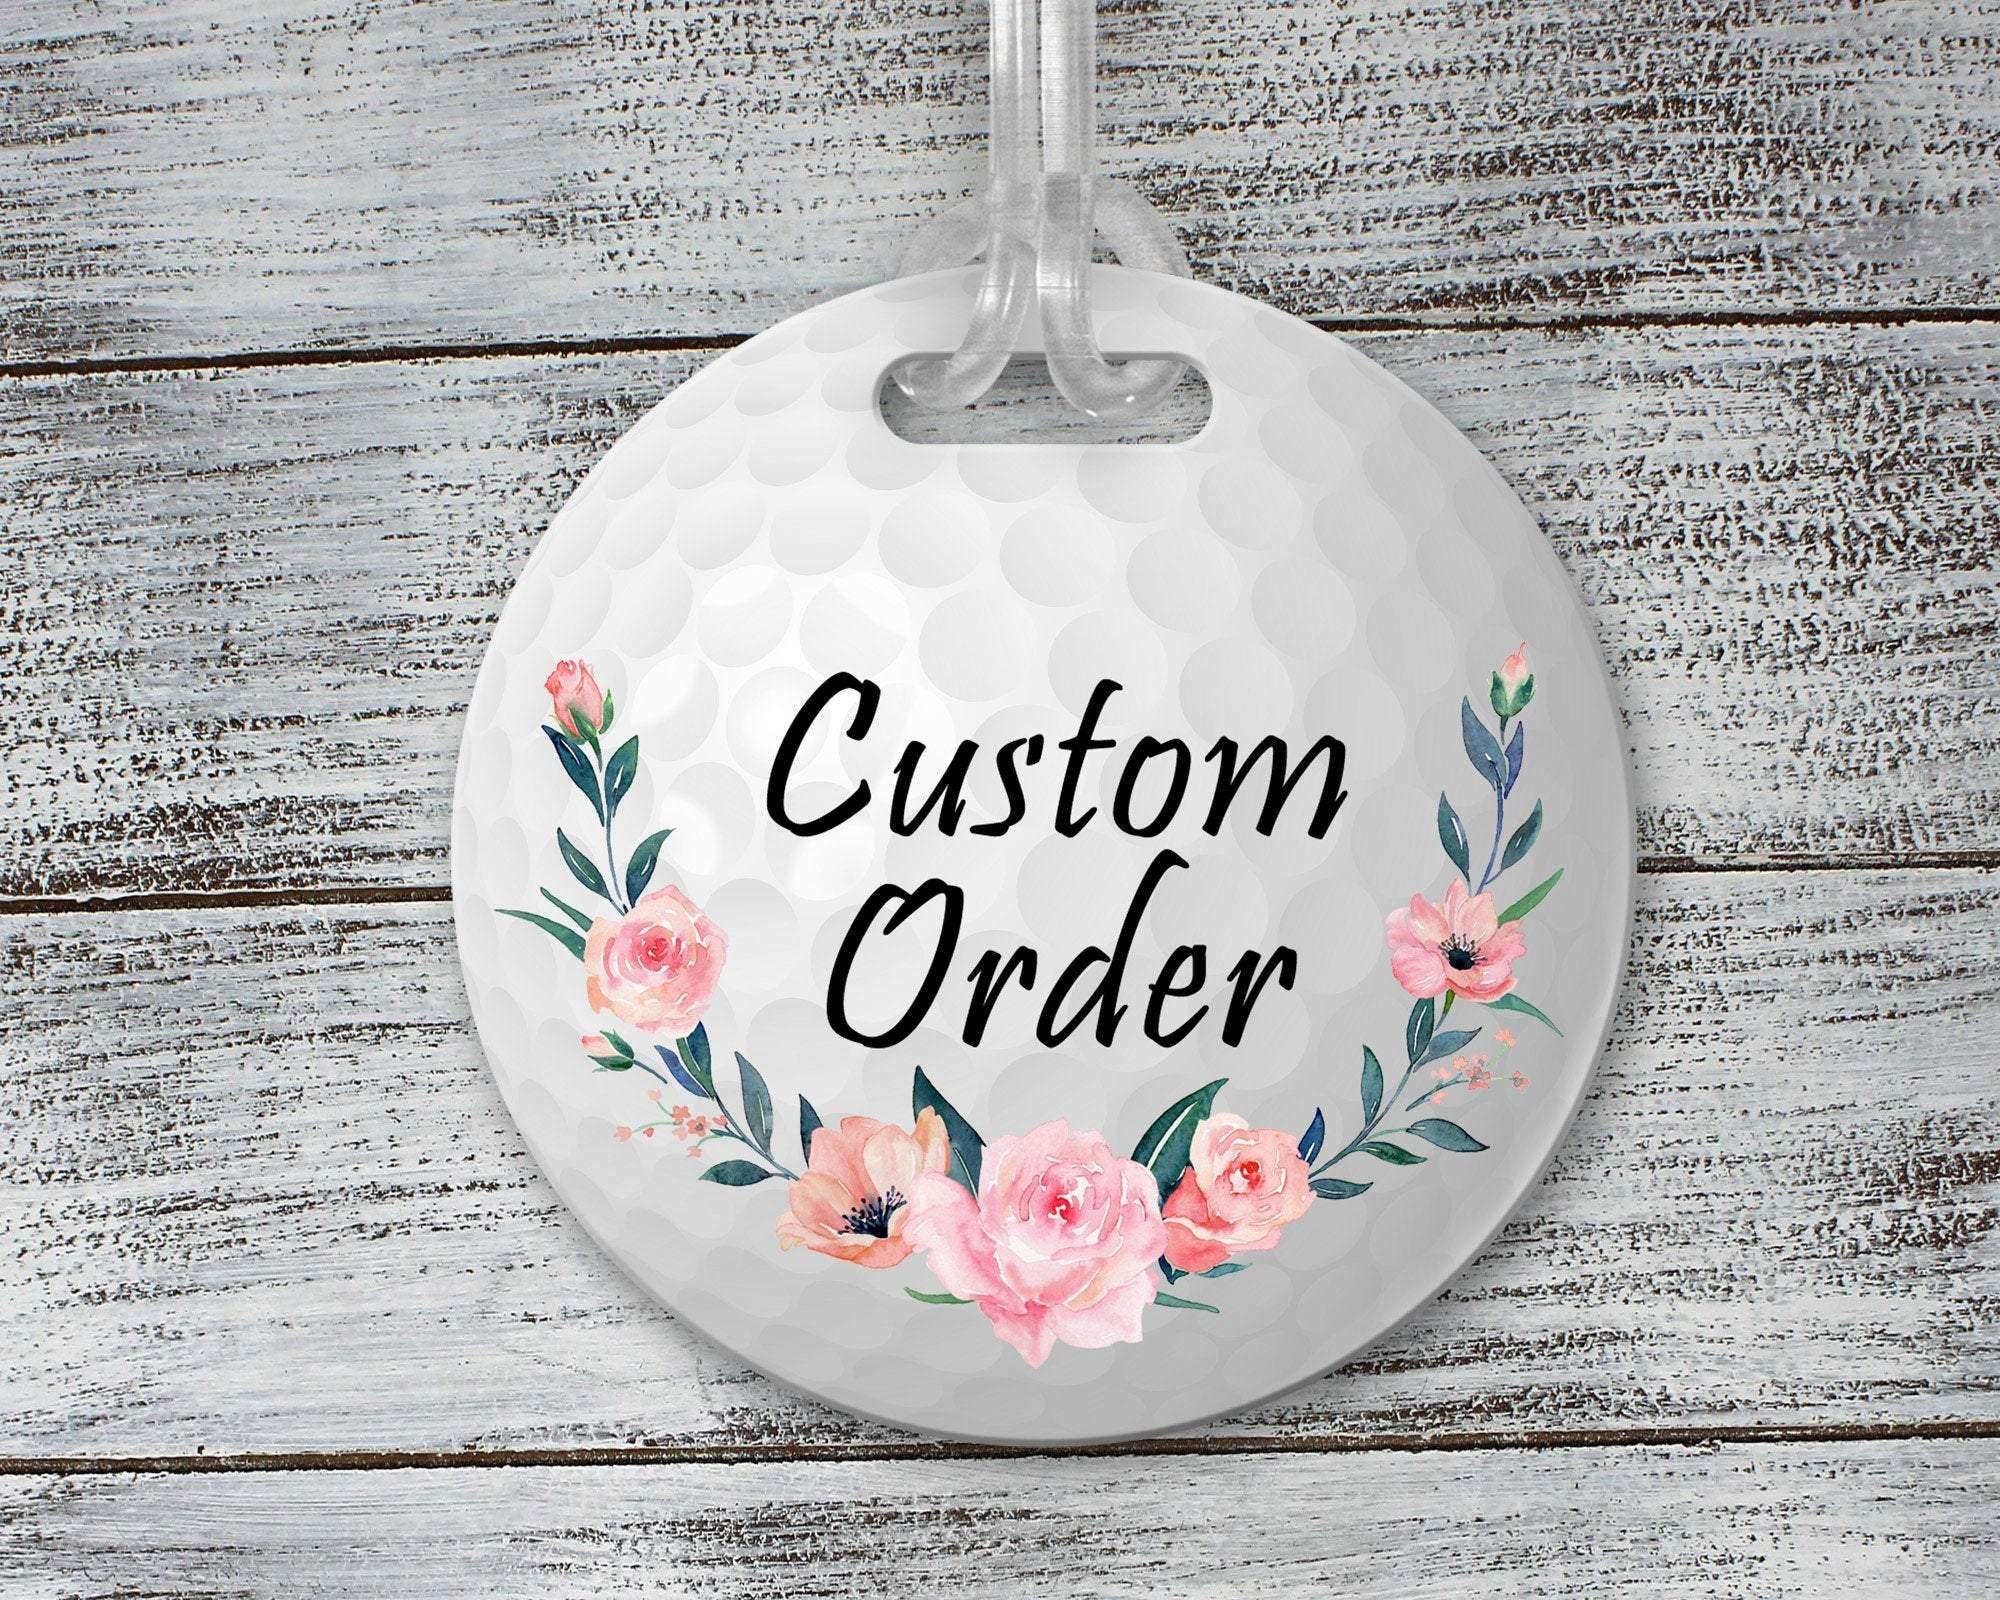 Luggage Tags | Personalized Luggage Tag | Custom Golf Gifts | Golf Tag | Custom Order Golf | This and That Solutions | Personalized Gifts | Custom Home Décor